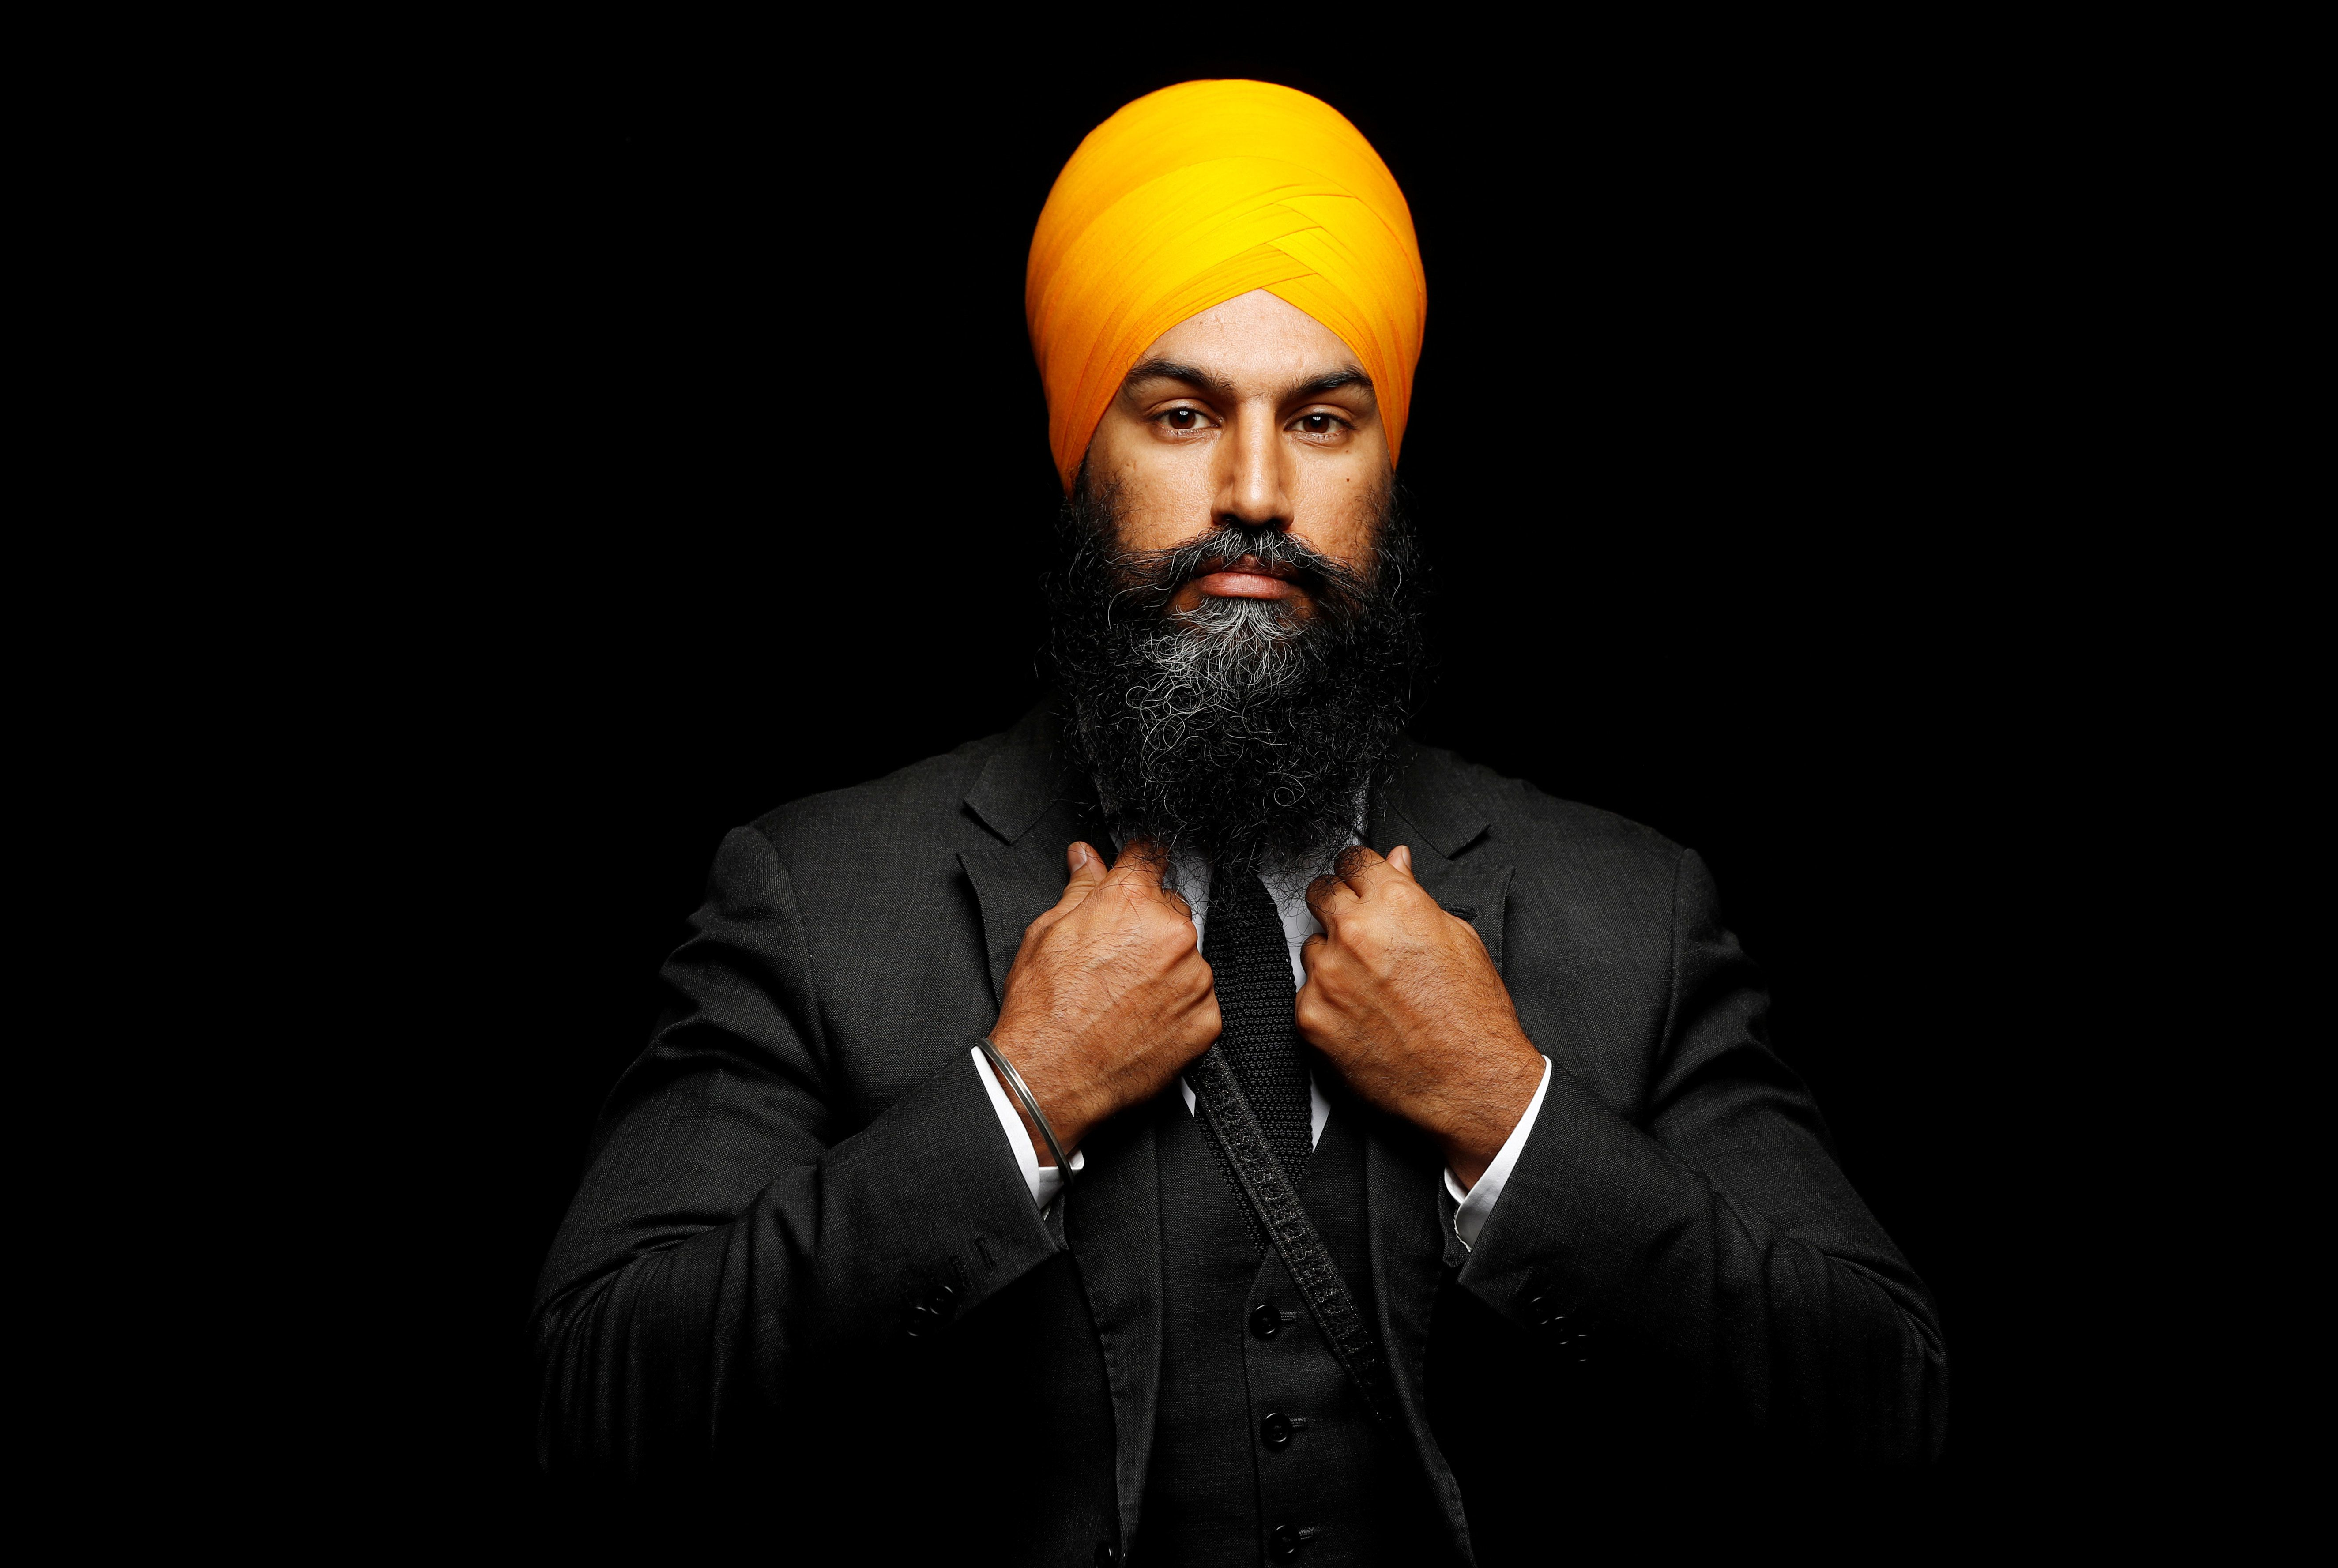 New Democratic Party federal leadership candidate Jagmeet Singh poses for a picture in Brampton, Ontario, Canada, July 13, 2017. Picture taken July 13, 2017.   REUTERS/Mark Blinch  TPX IMAGES OF THE DAY